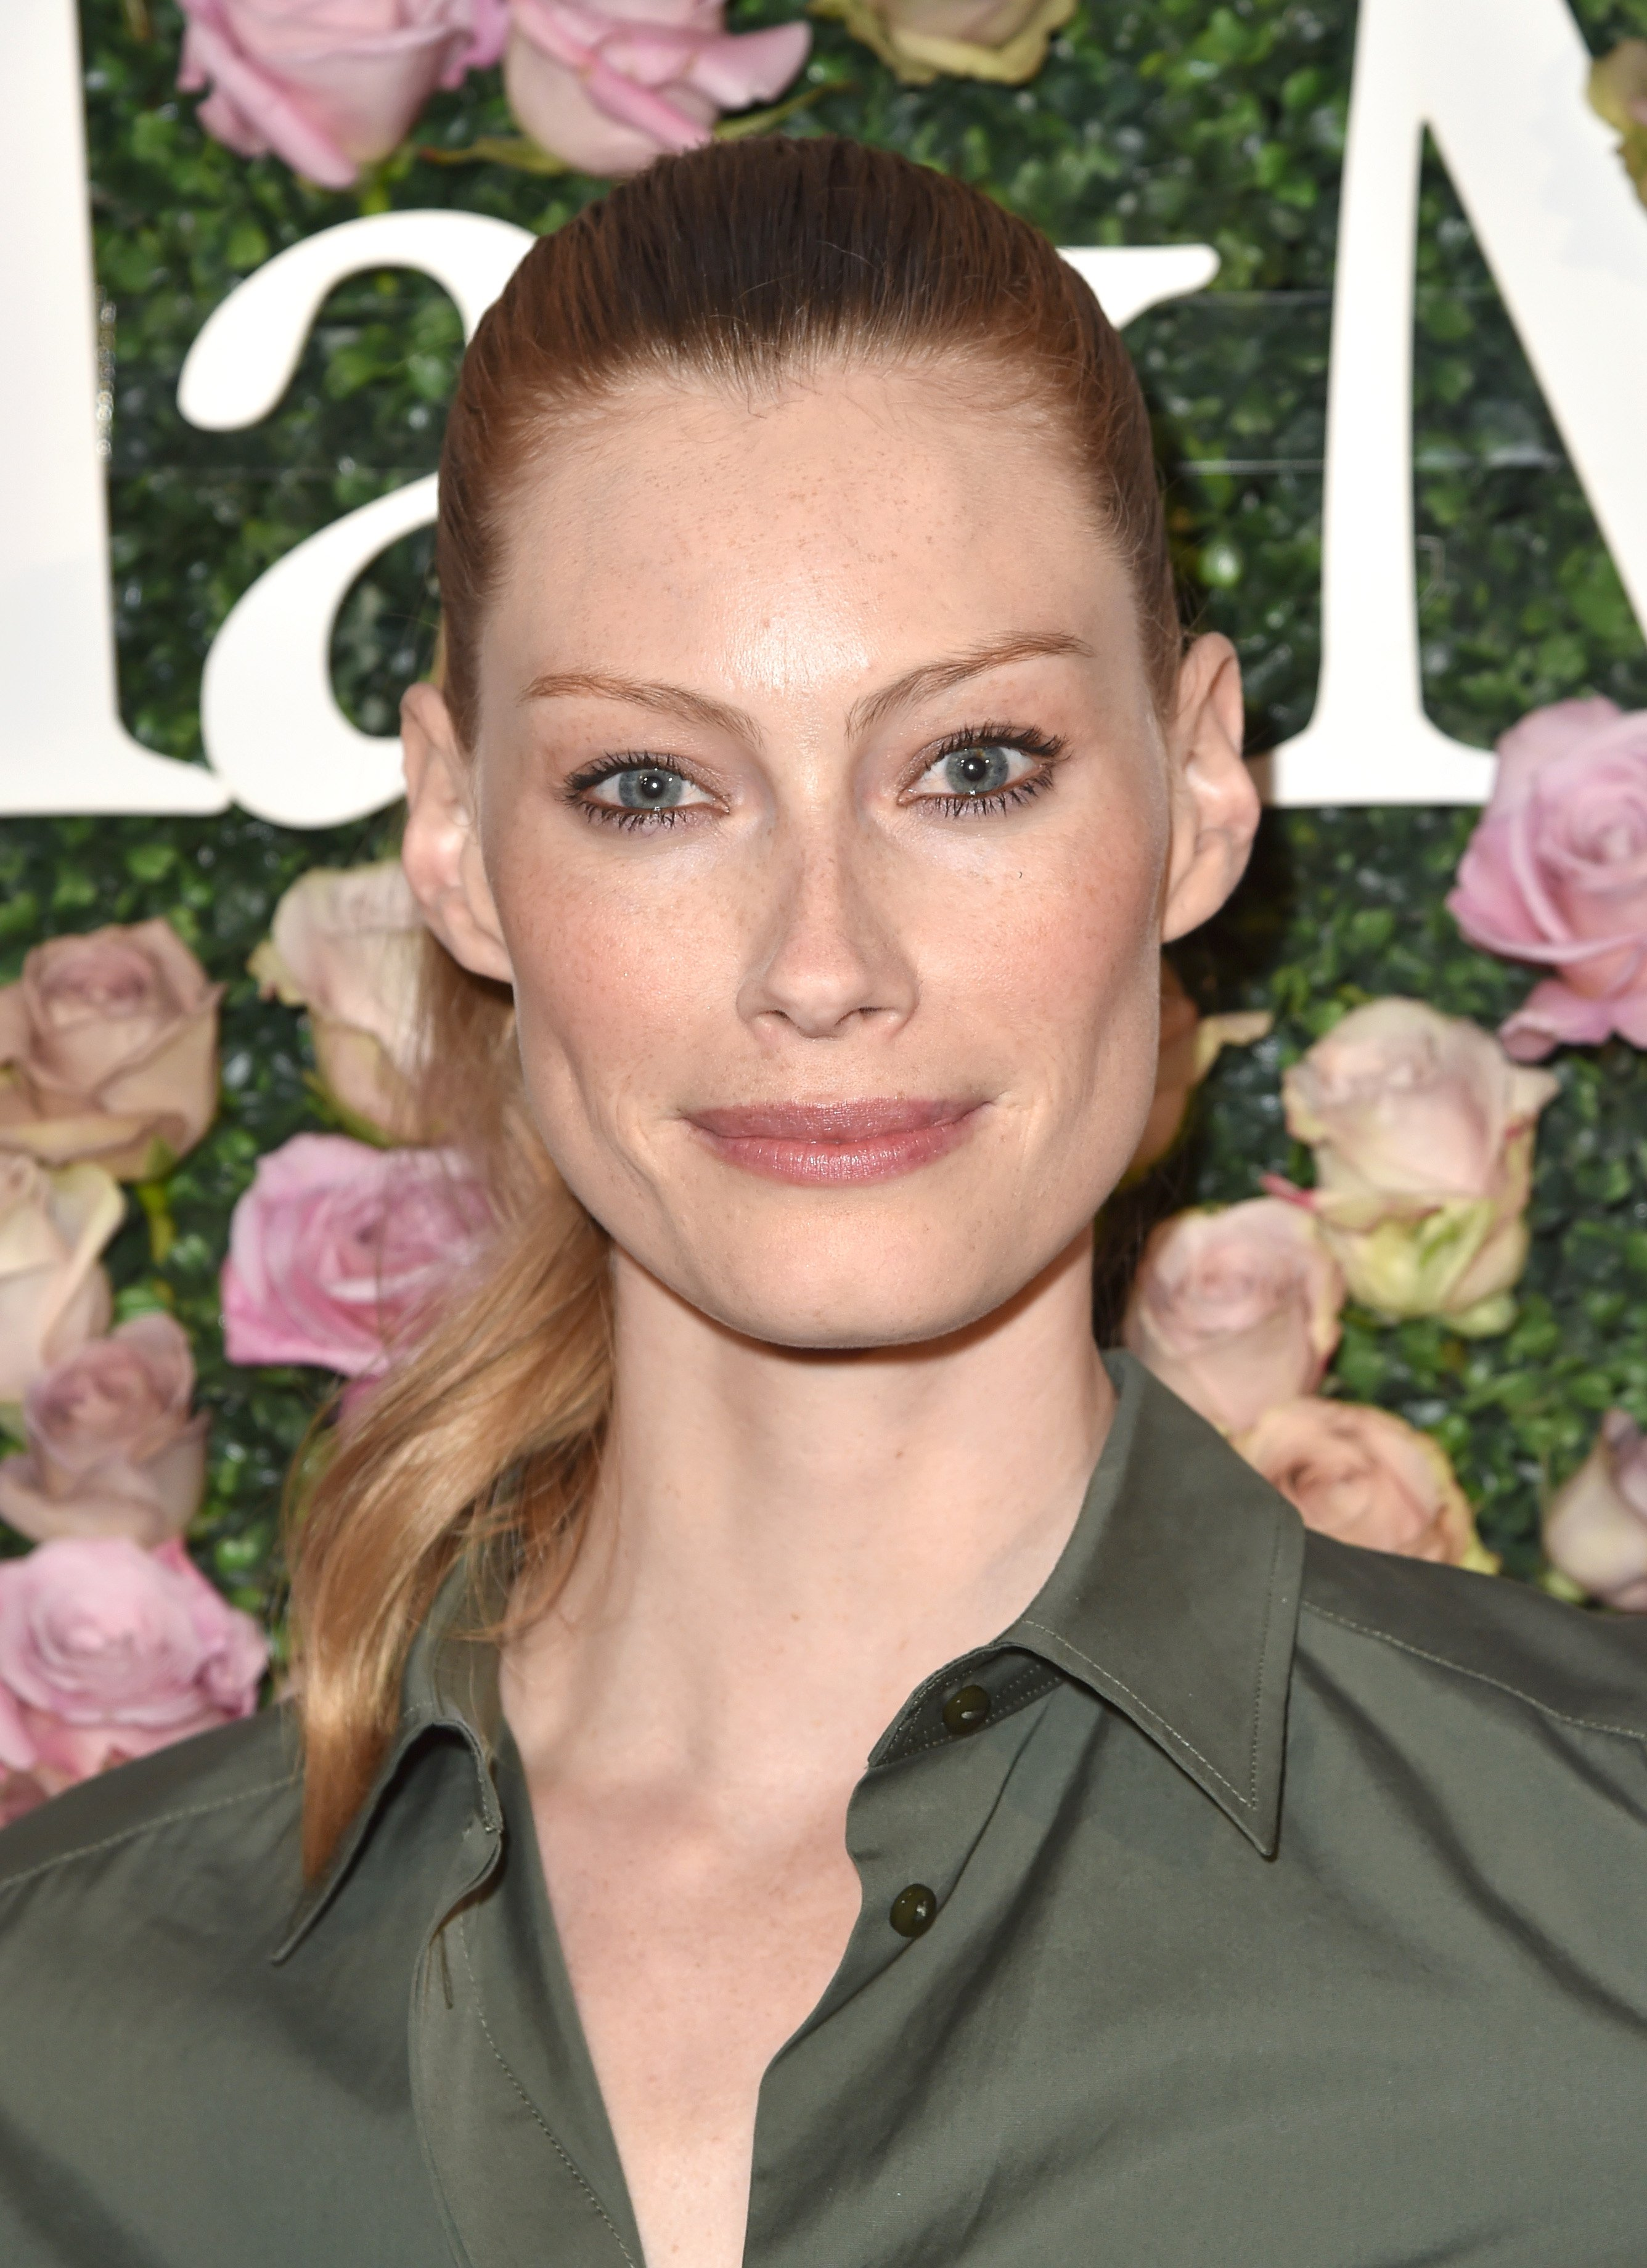 Alyssa Sutherland, wearing Max Mara, at Max Mara Celebrates Zoey Deutch - The 2017 Women In Film Max Mara Face of the Future at Chateau Marmont on June 12, 2017 | Photo: GettyImages